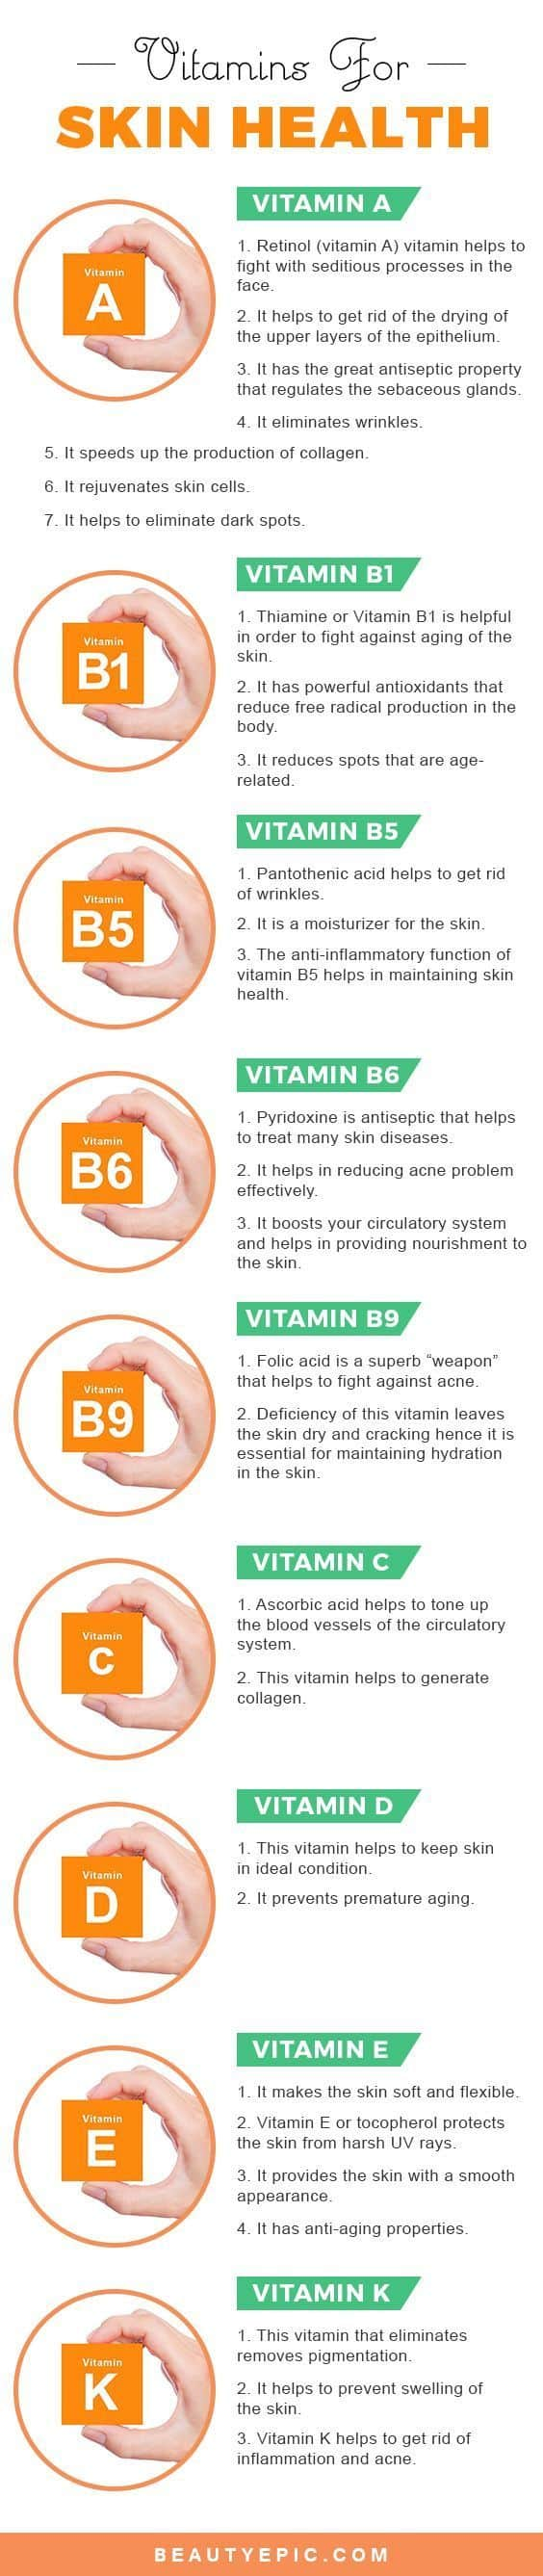 The right vitamins can help you achieve the clearer, smoother and fairer skin you've always wanted. Find out what they are in this list.